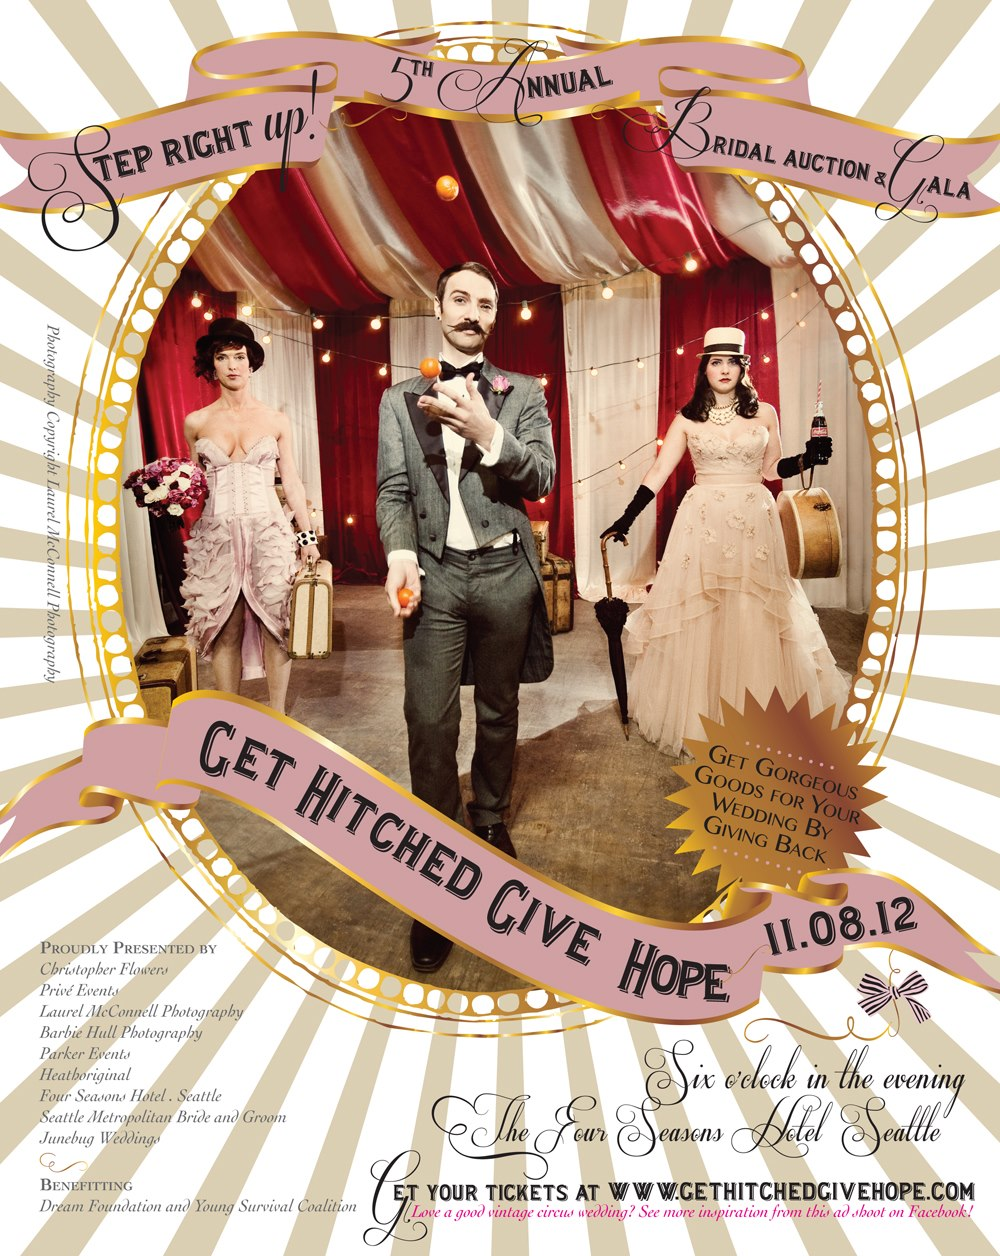 Seattle's premire wedding event and charity Get Hitched Give Hope